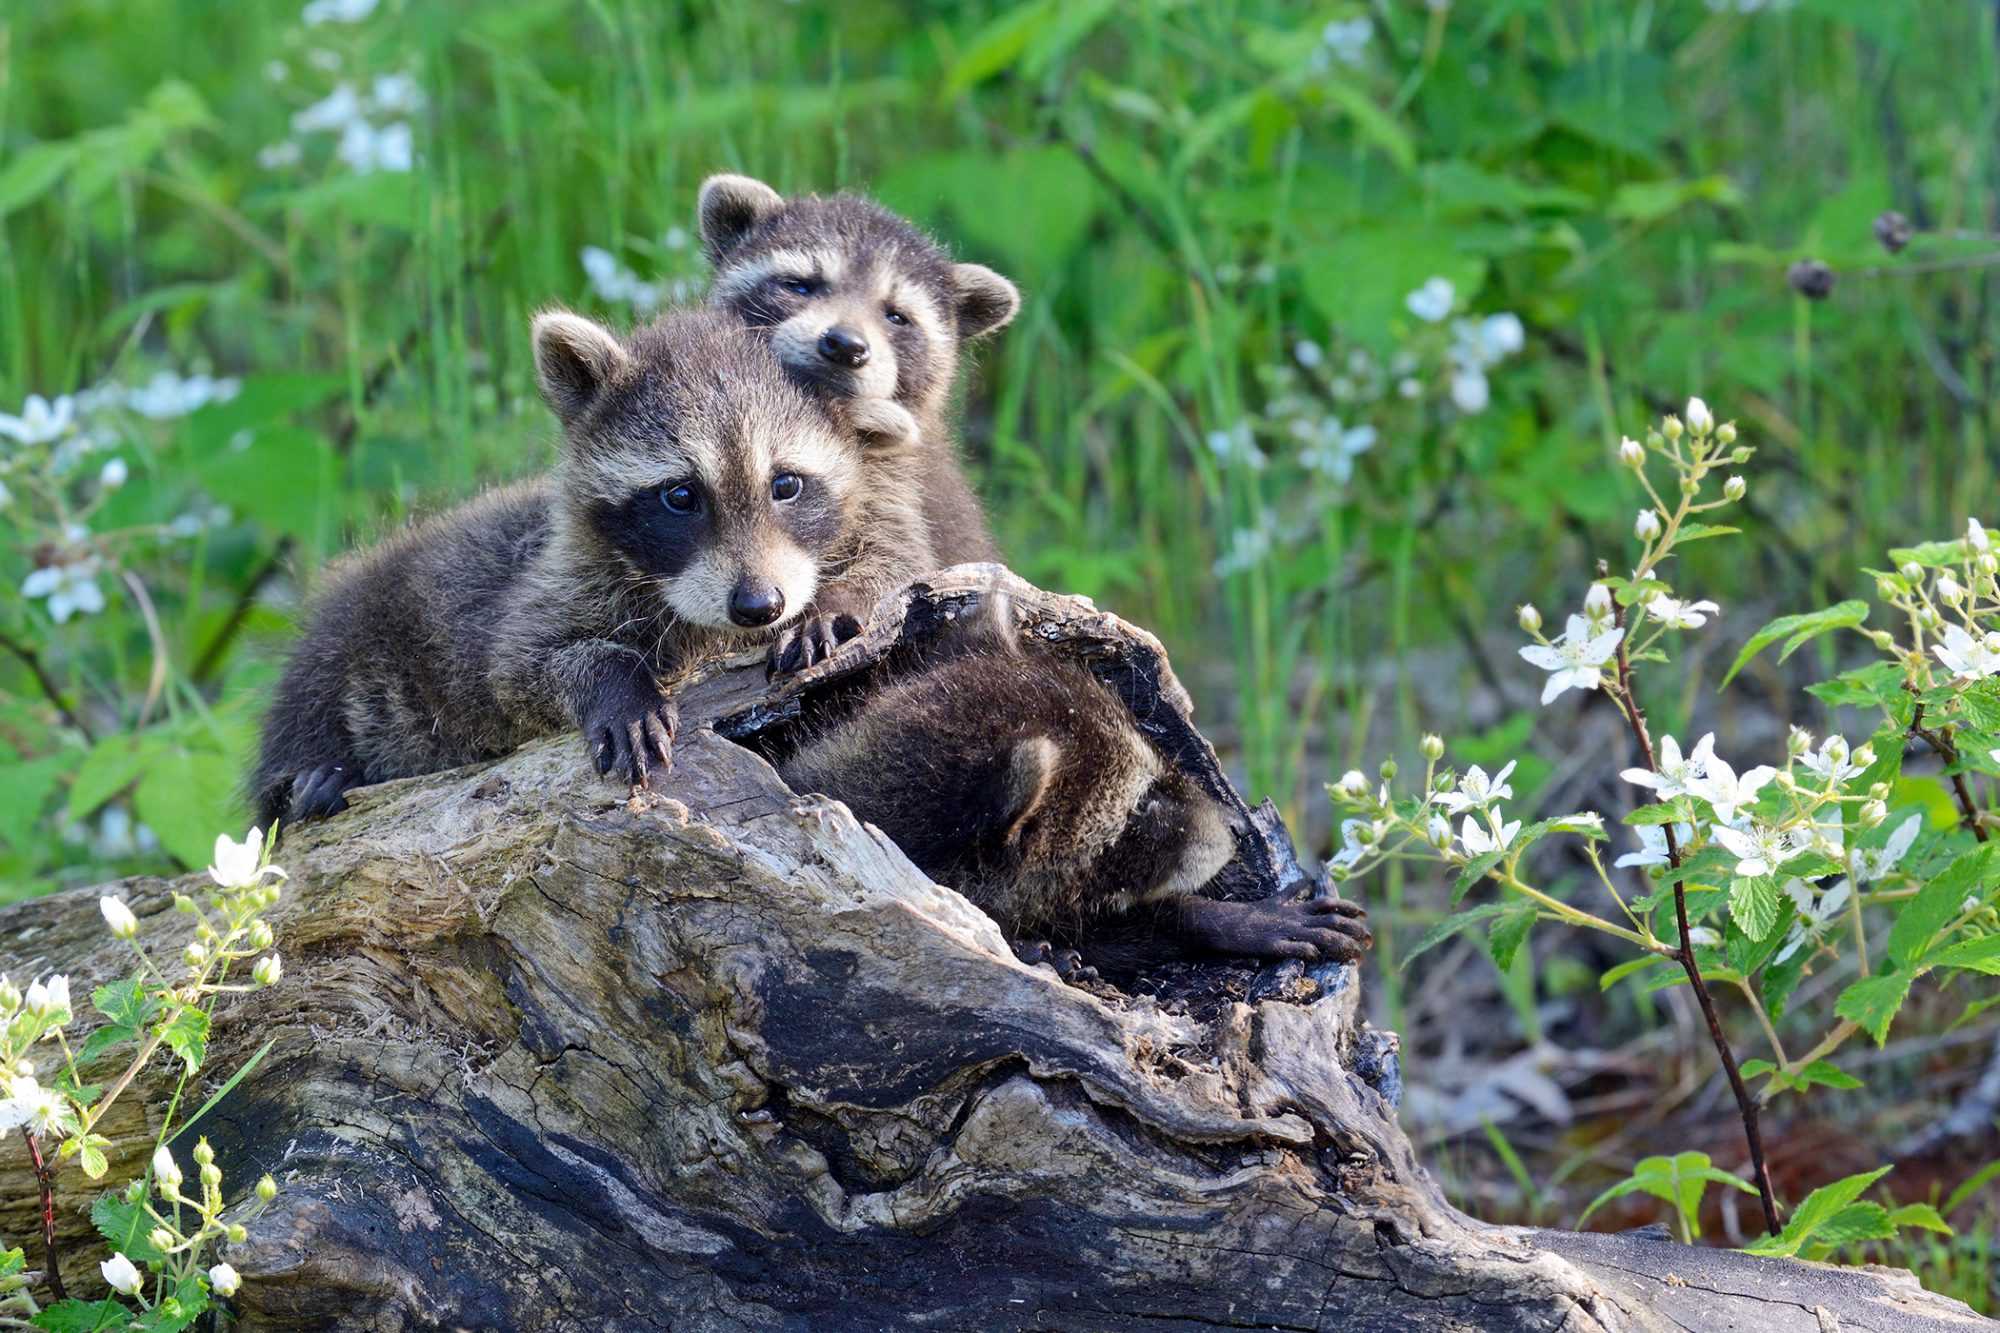 Two baby raccoons cuddle together on a log with third baby raccoon crawling out of log